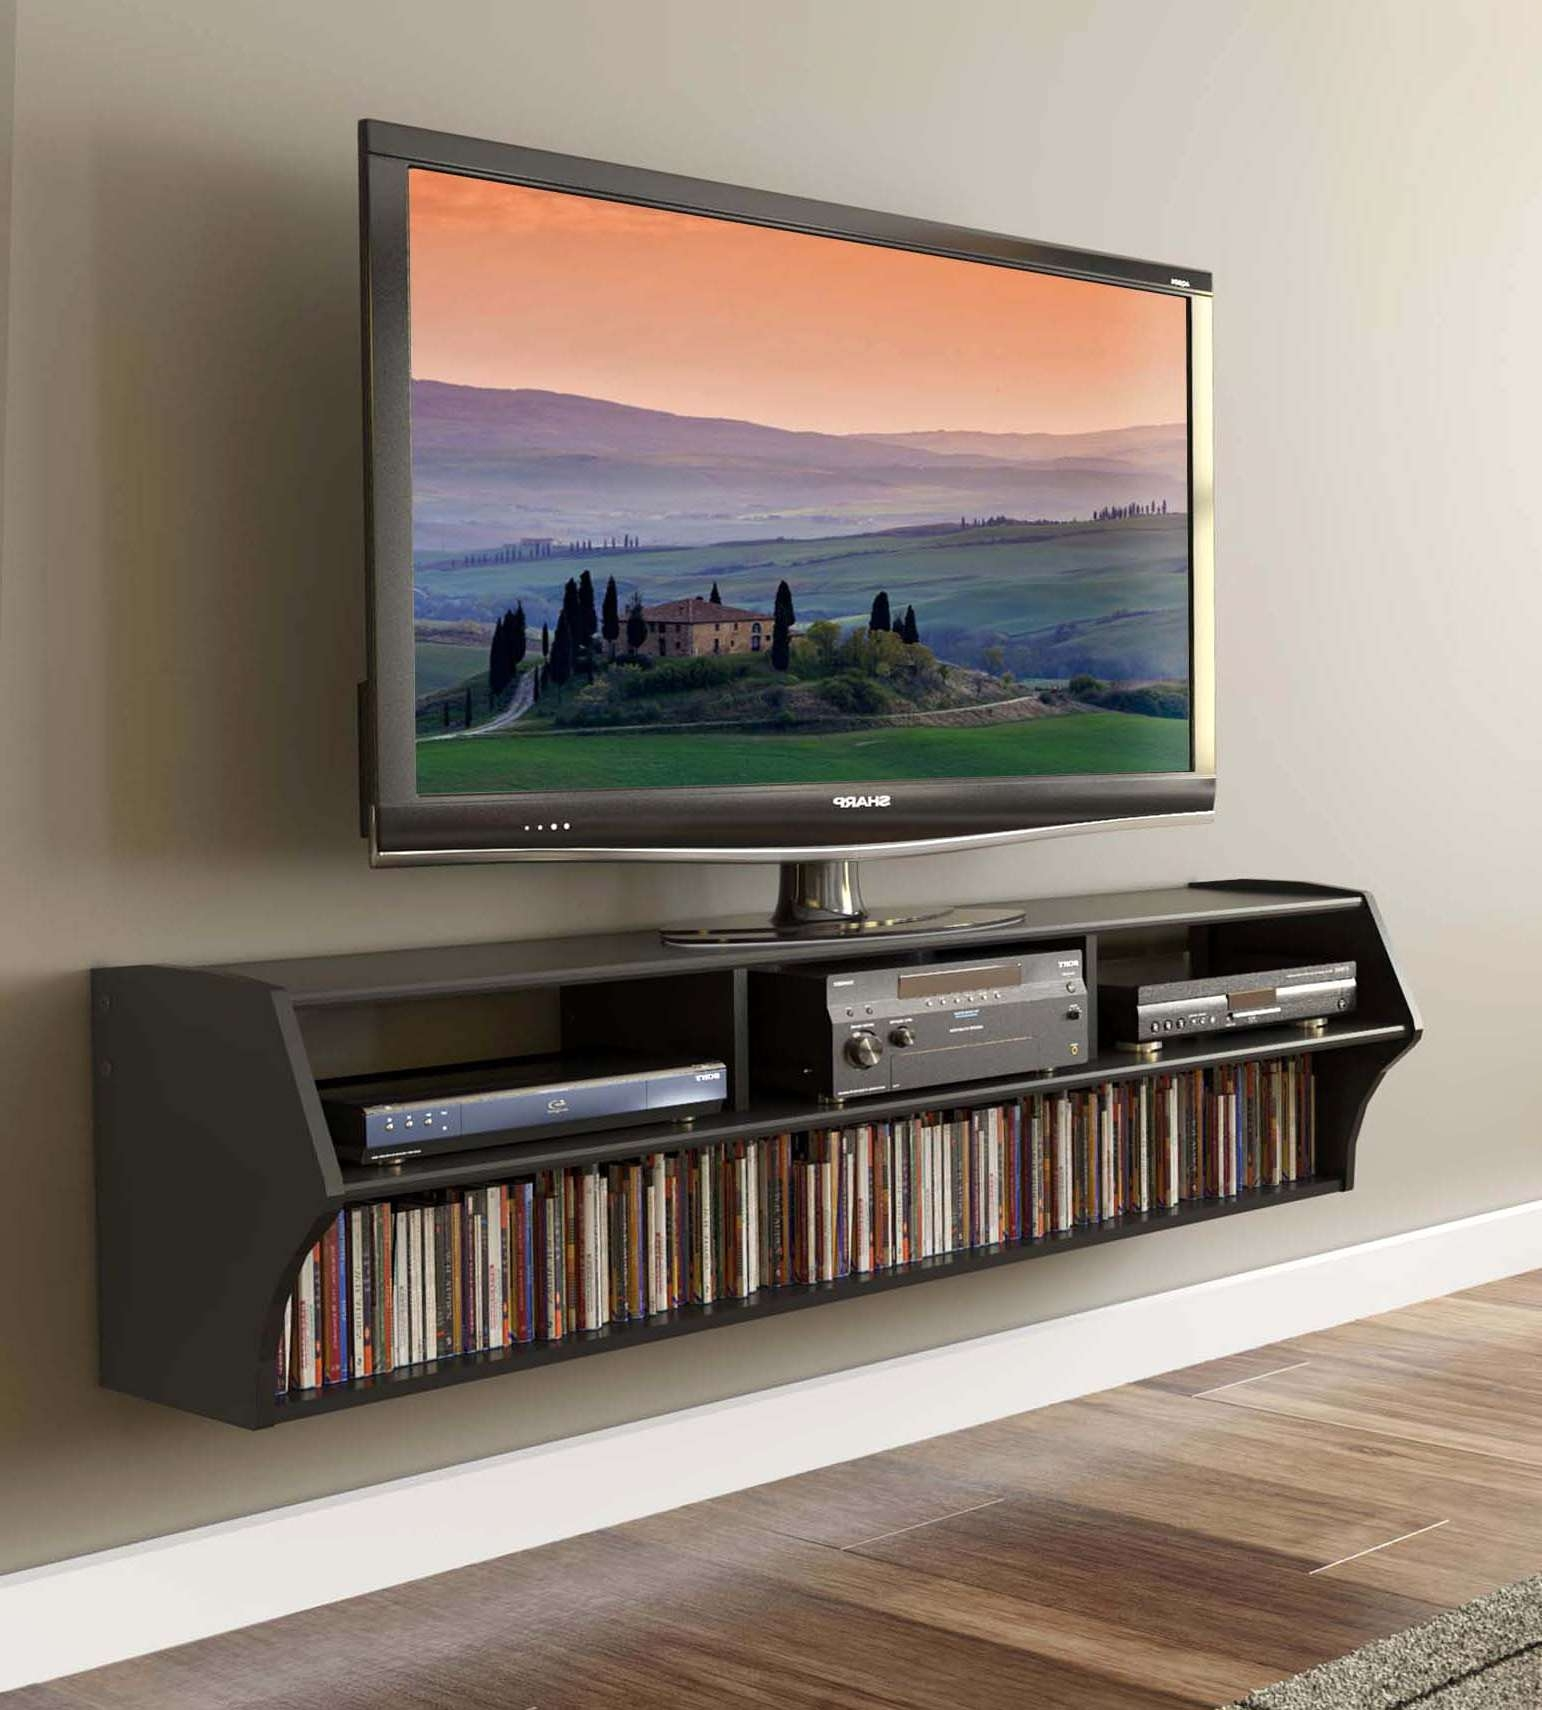 Wall Mounted Flat Screen Tv Cabinet With 58 Wide Black Wall Regarding Wall Mounted Tv Cabinets For Flat Screens With Doors (View 10 of 20)